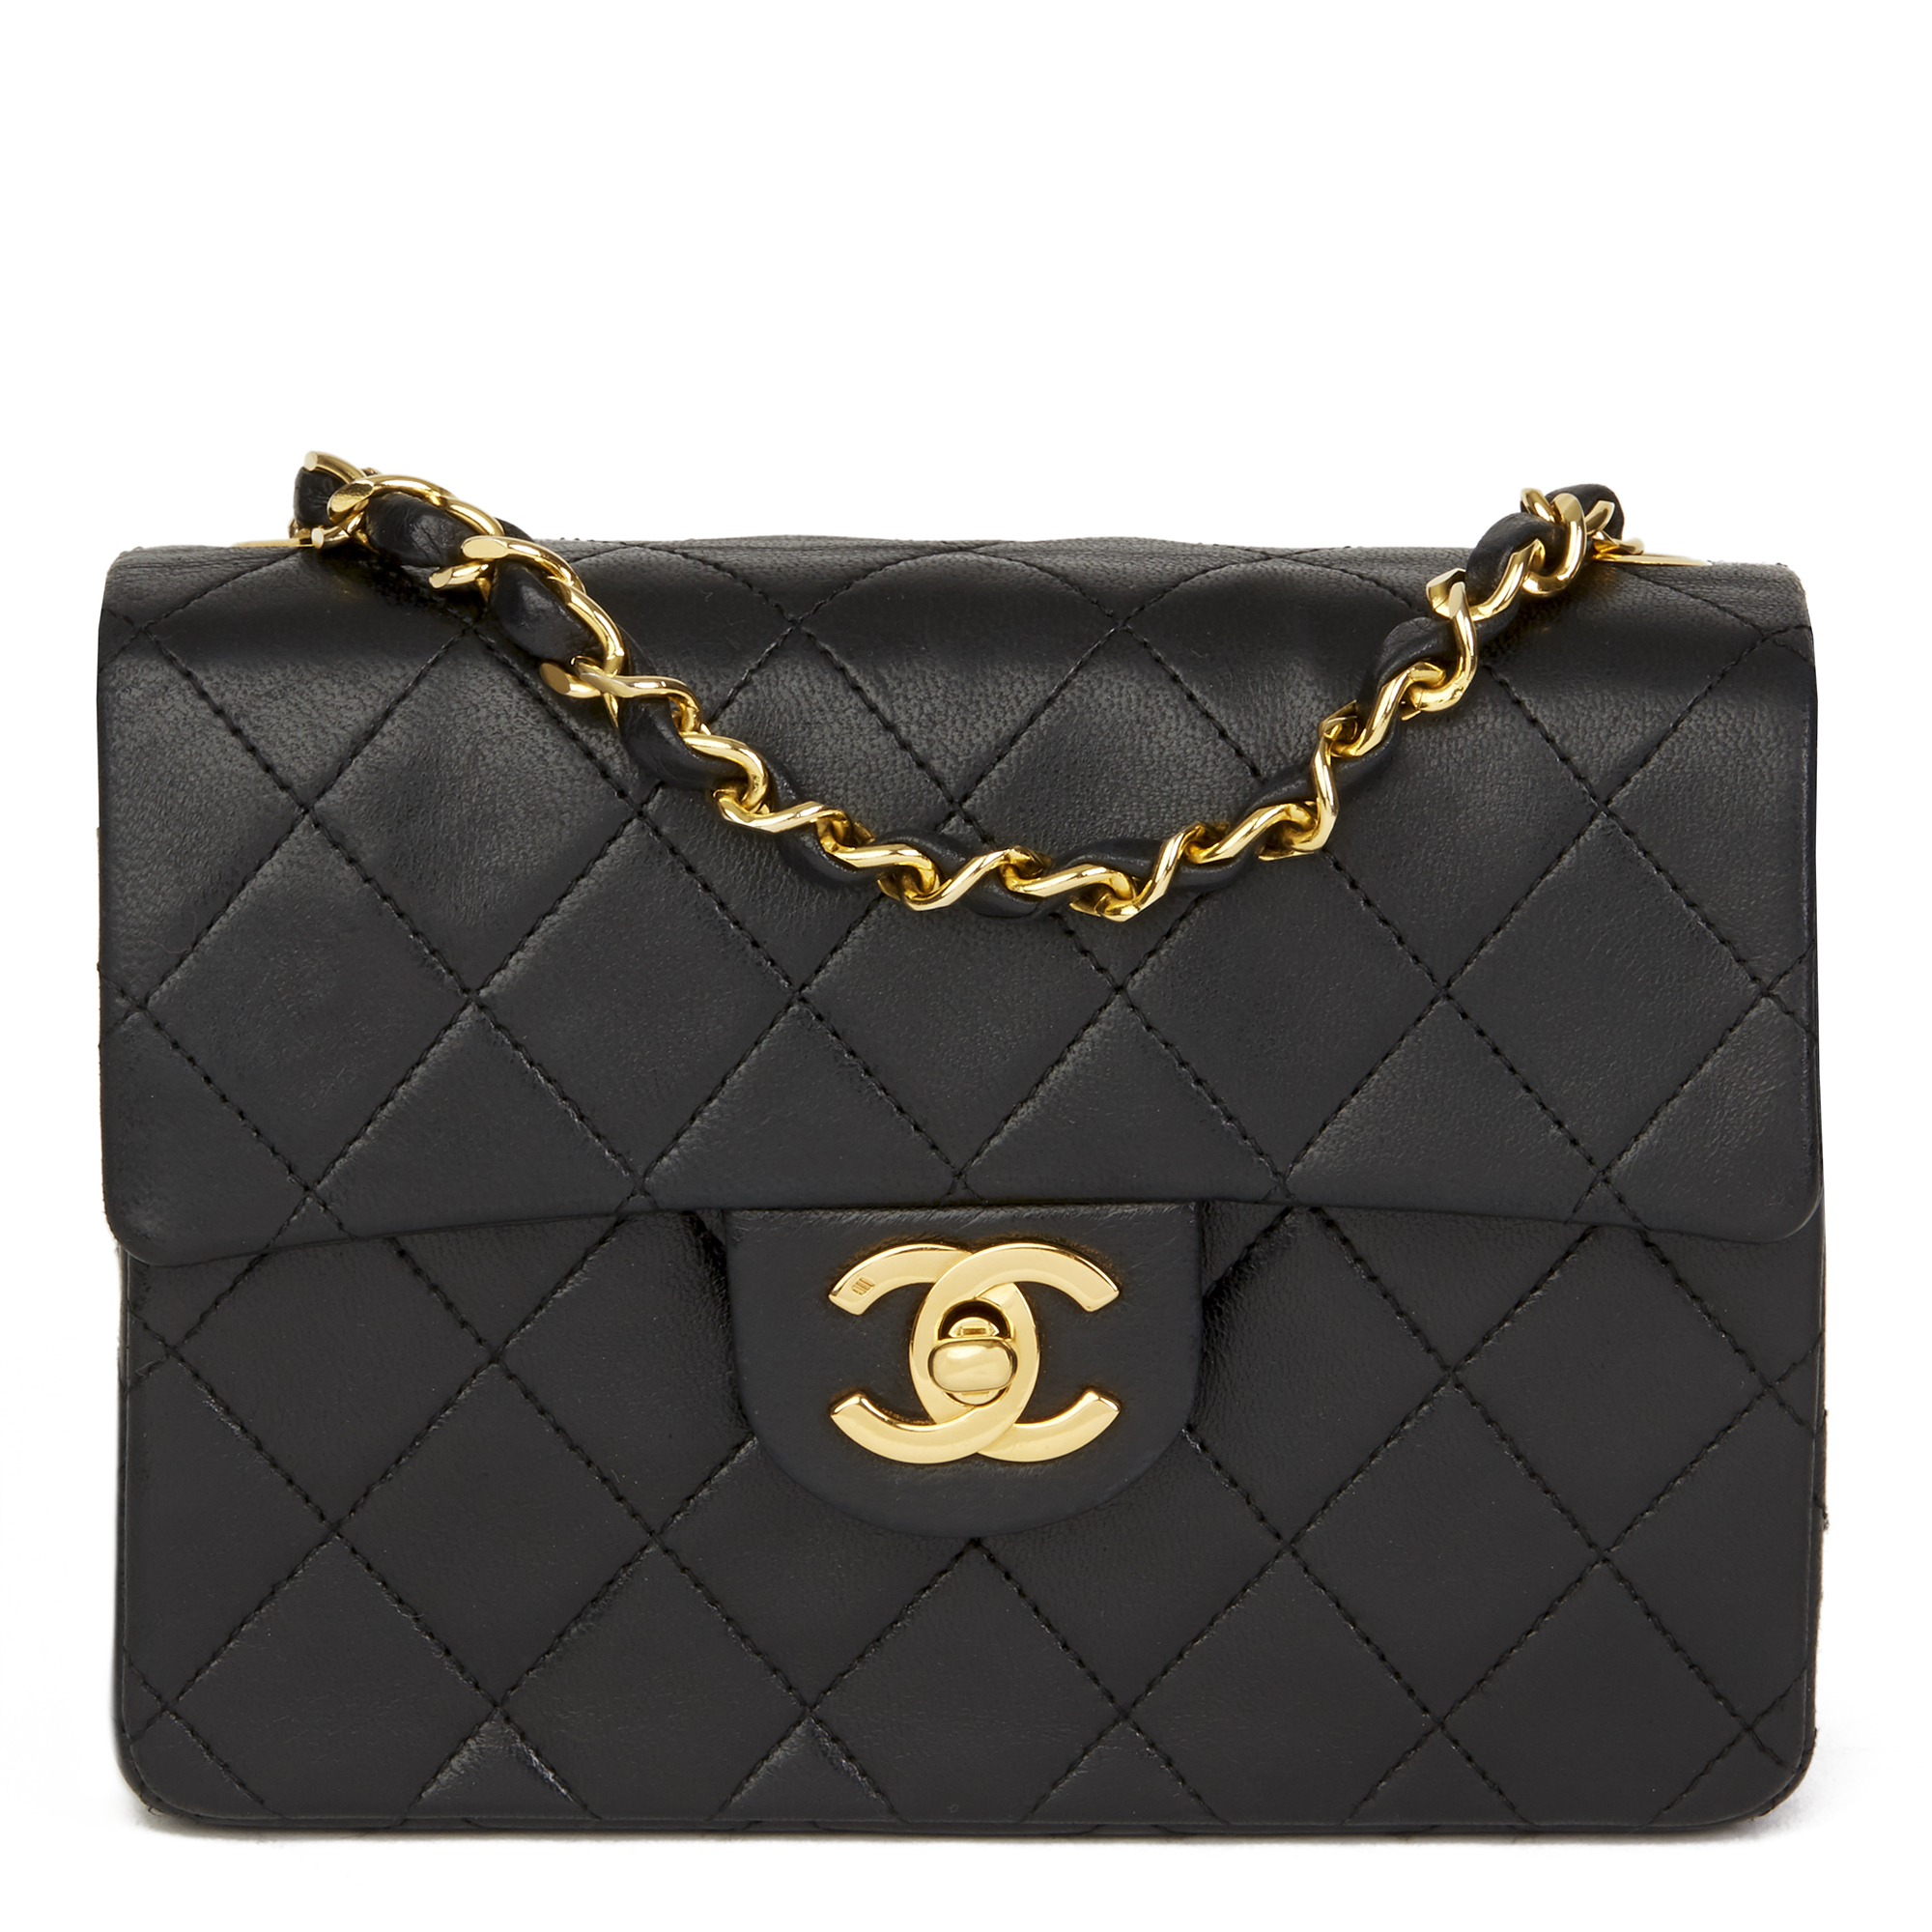 24df799ffe5dc9 Chanel Black Quilted Lambskin Leather Mini Flap Bag - Best Quilt ...